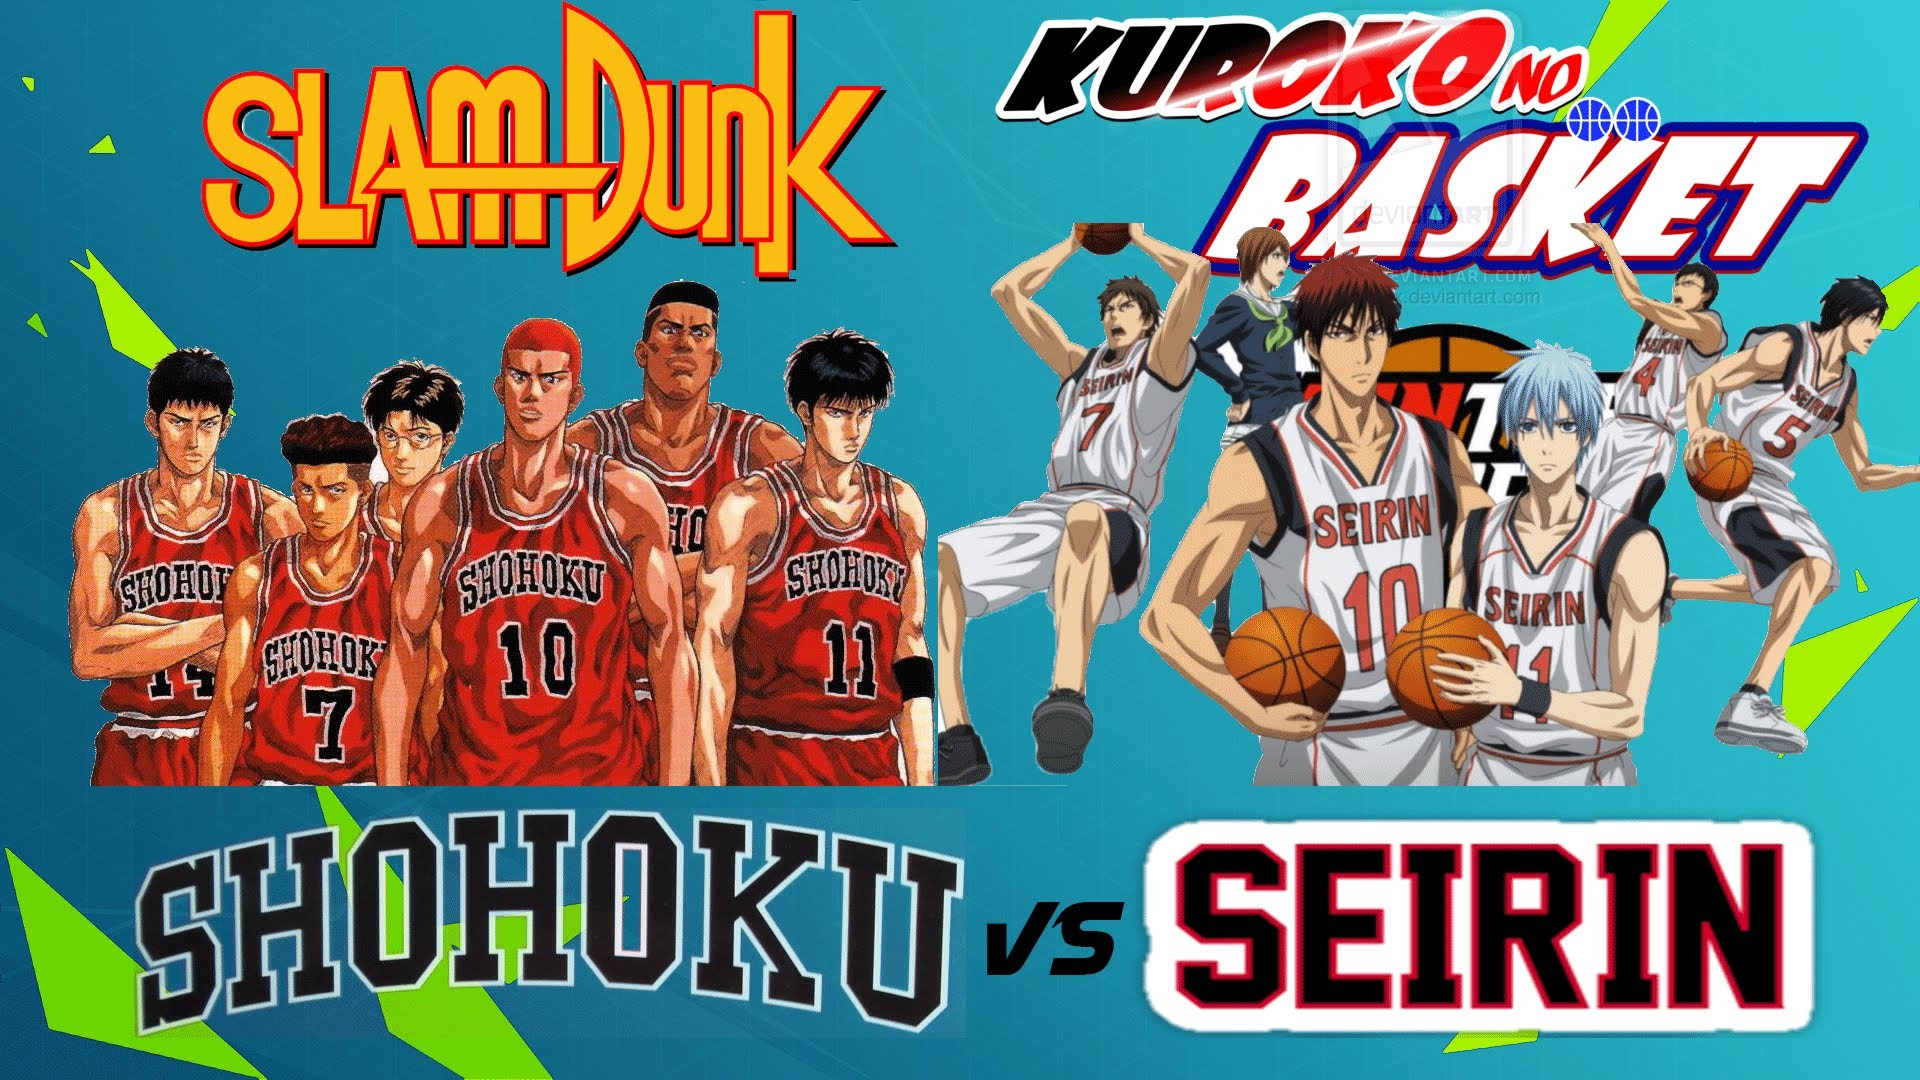 1920x1080 SHOHOKU vs SEIRIN | 1ª Parte | Crossover Slam Dunk vs Kuroko no Basket |  NBA 2k14 - YouTube